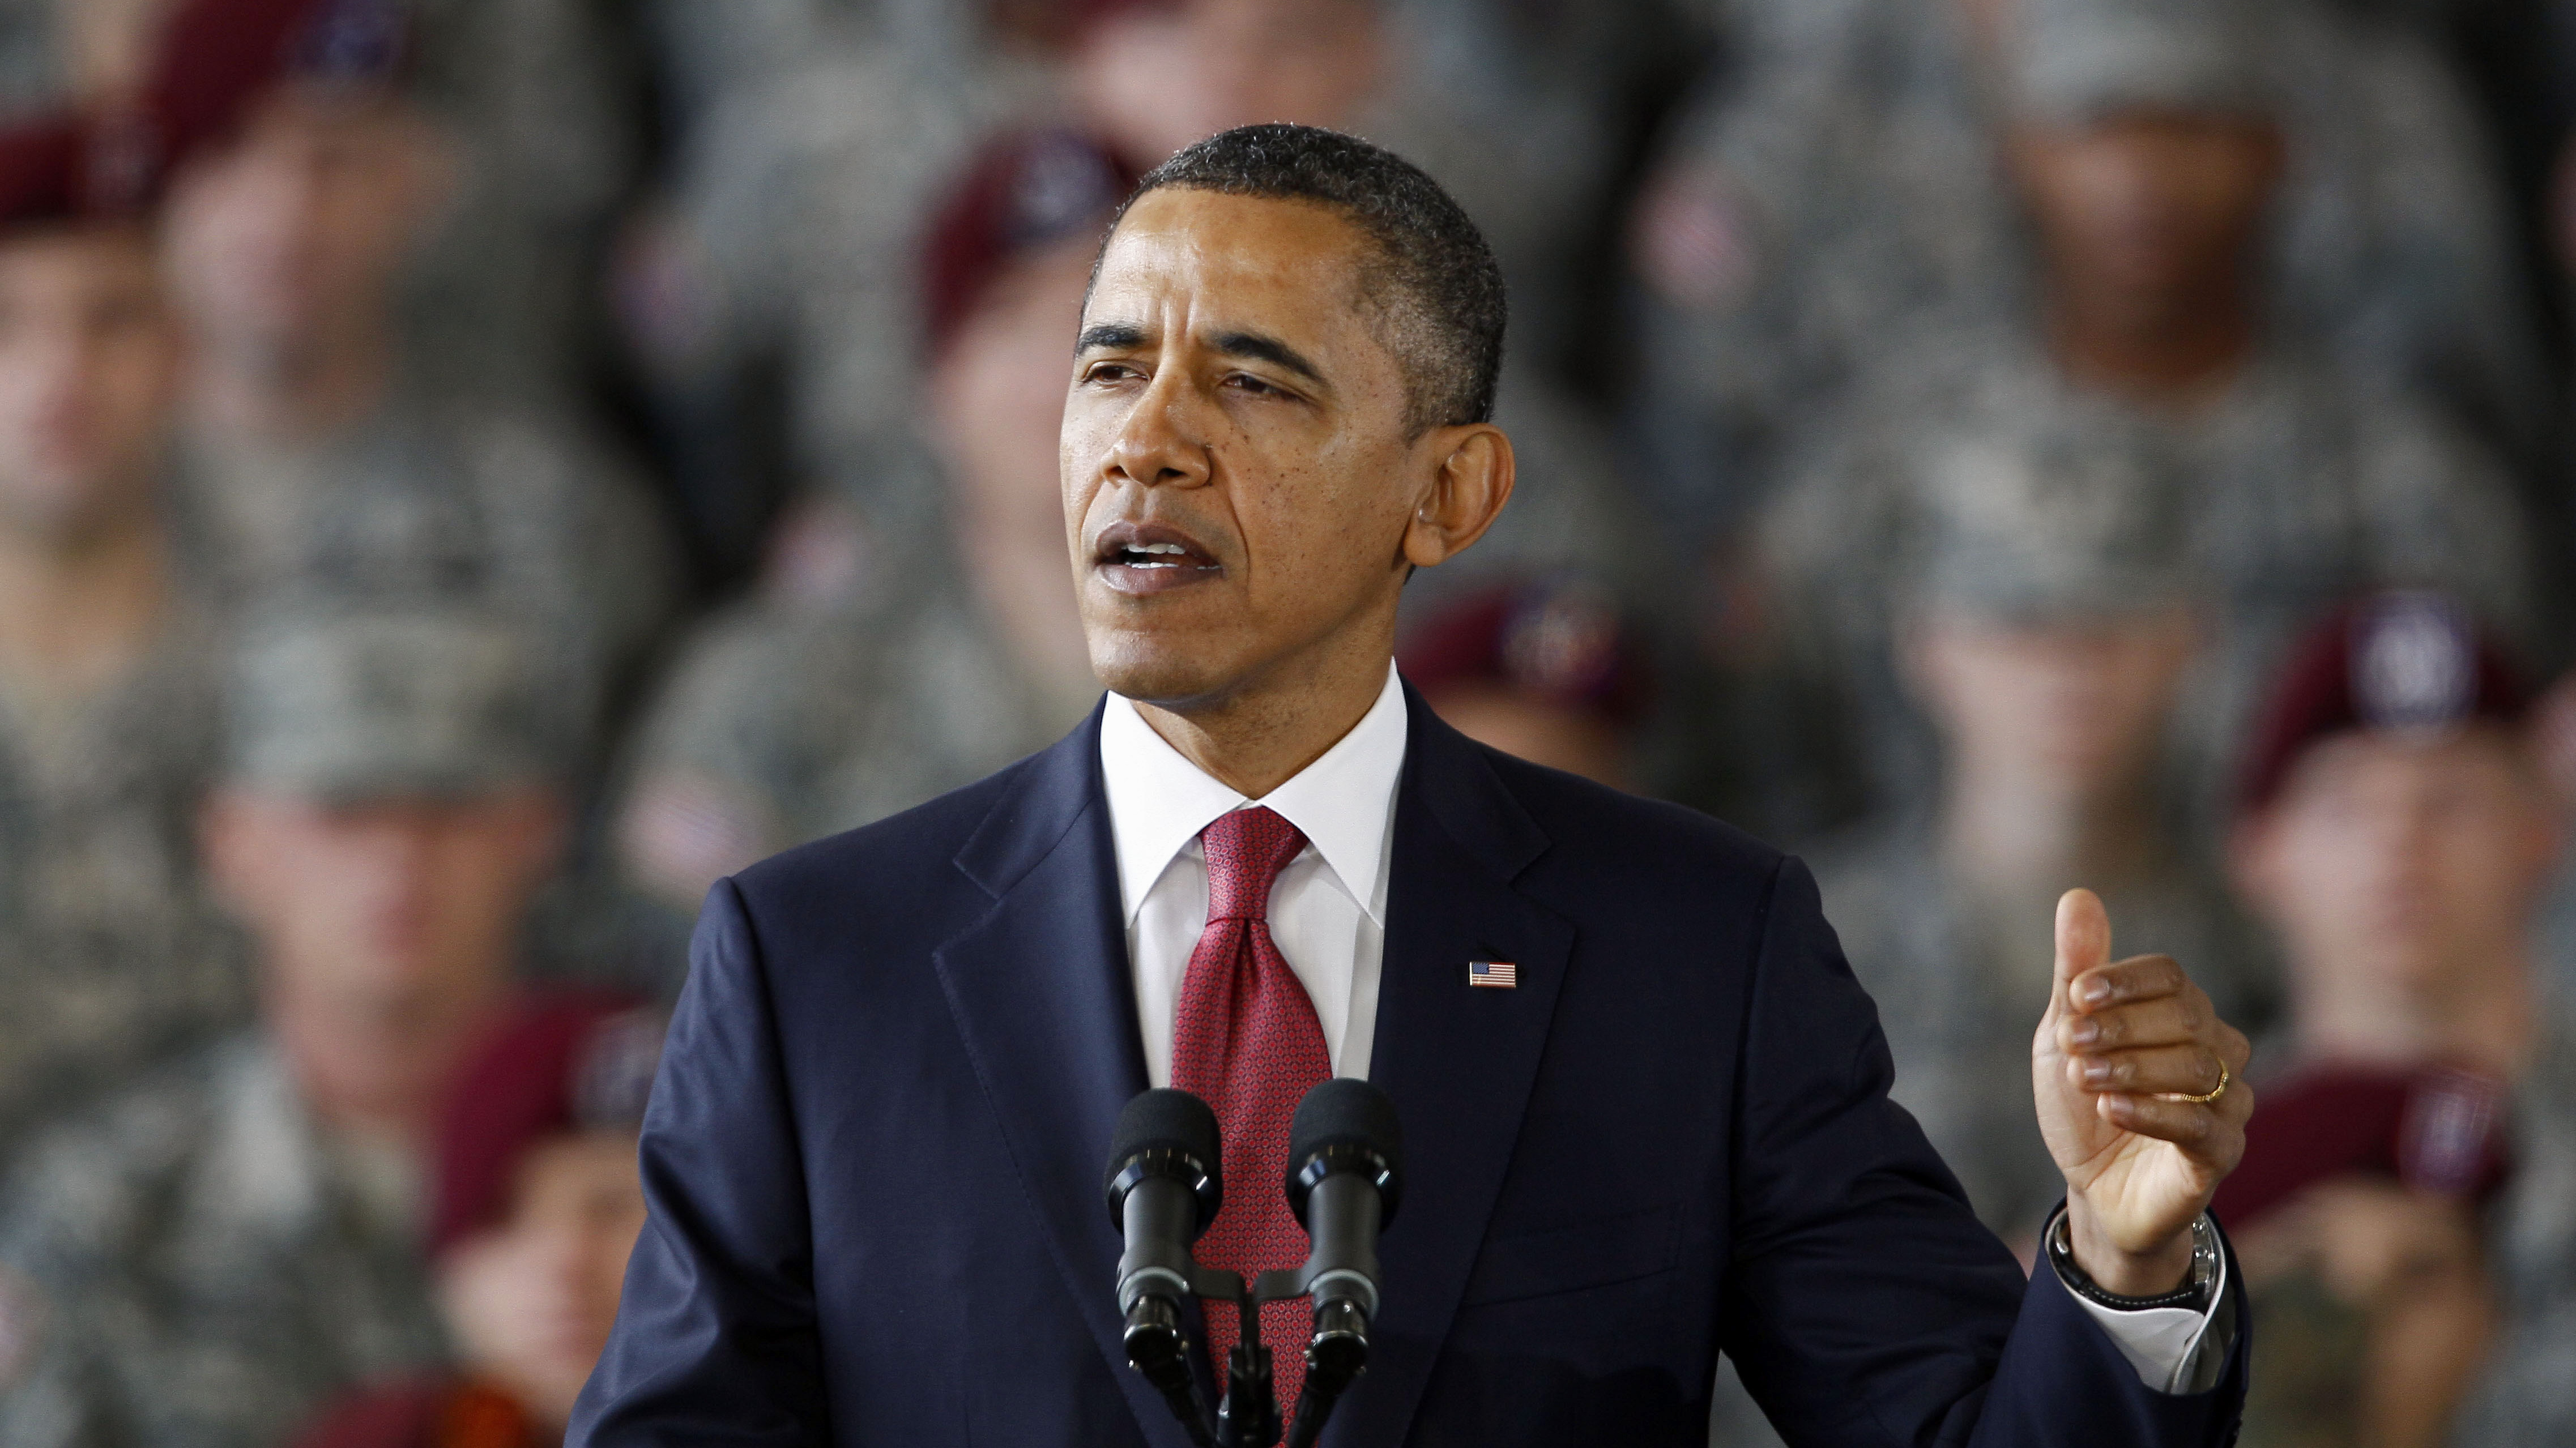 The Specter Of Iraq Haunts The Political Life Of Barack Obama